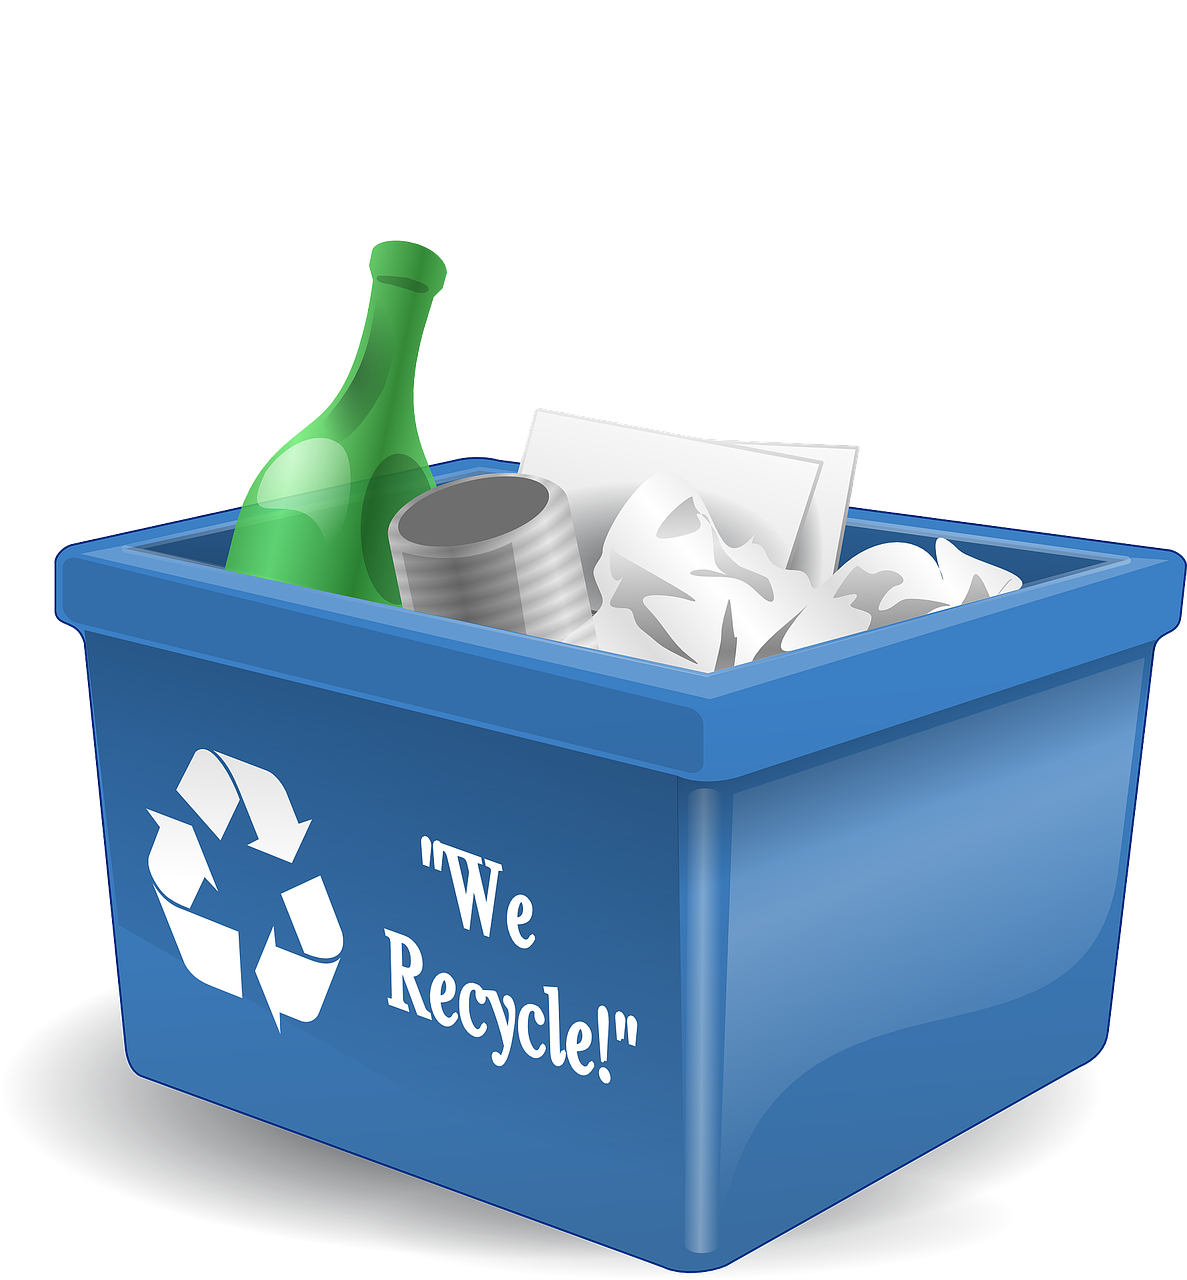 May contain: recycling symbol, and container filled with recycling materials